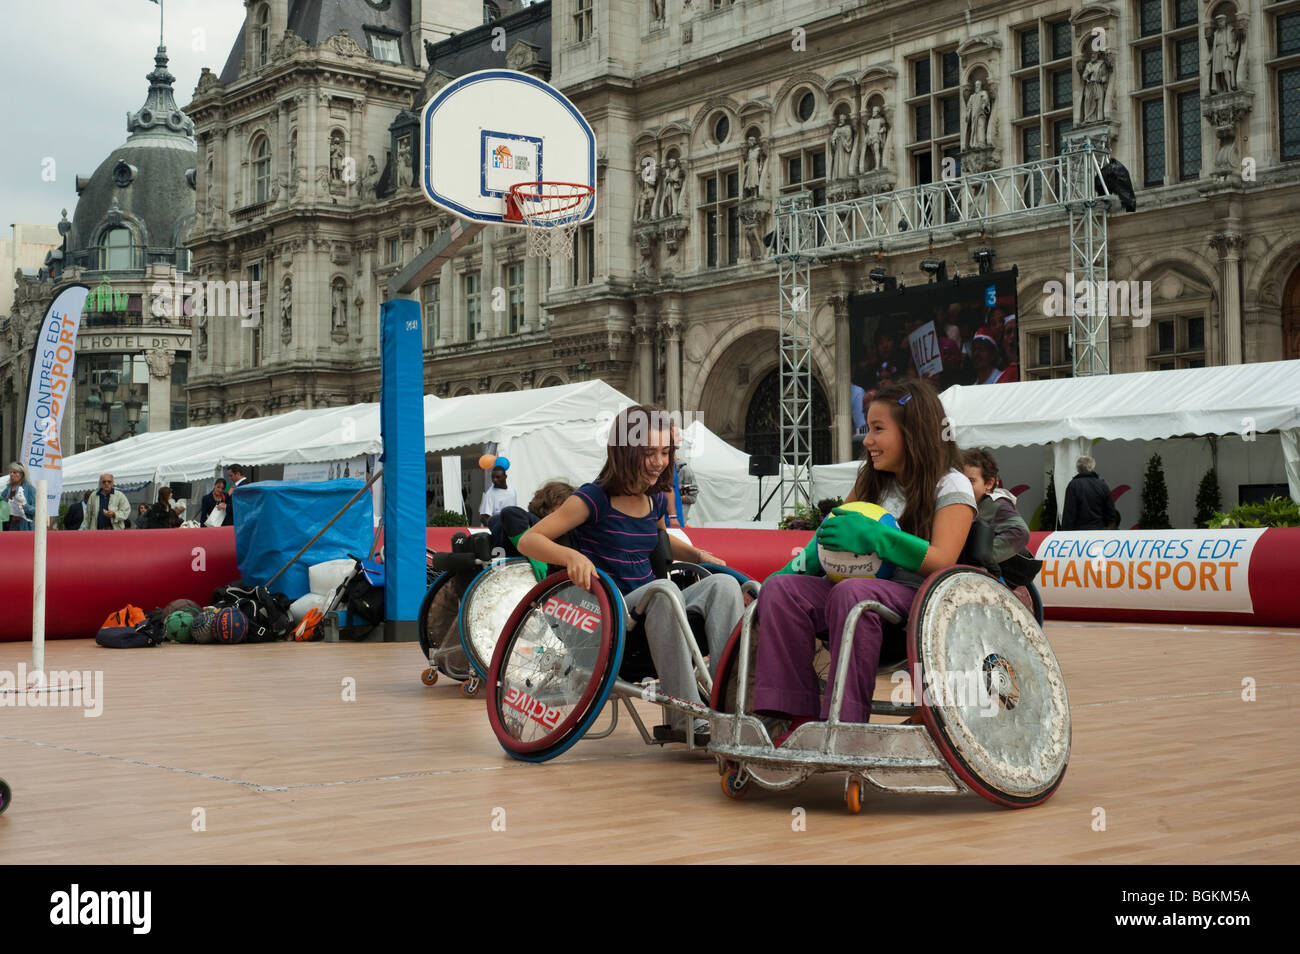 paris france french handicapped sports children playing stock photo 27477782 alamy. Black Bedroom Furniture Sets. Home Design Ideas